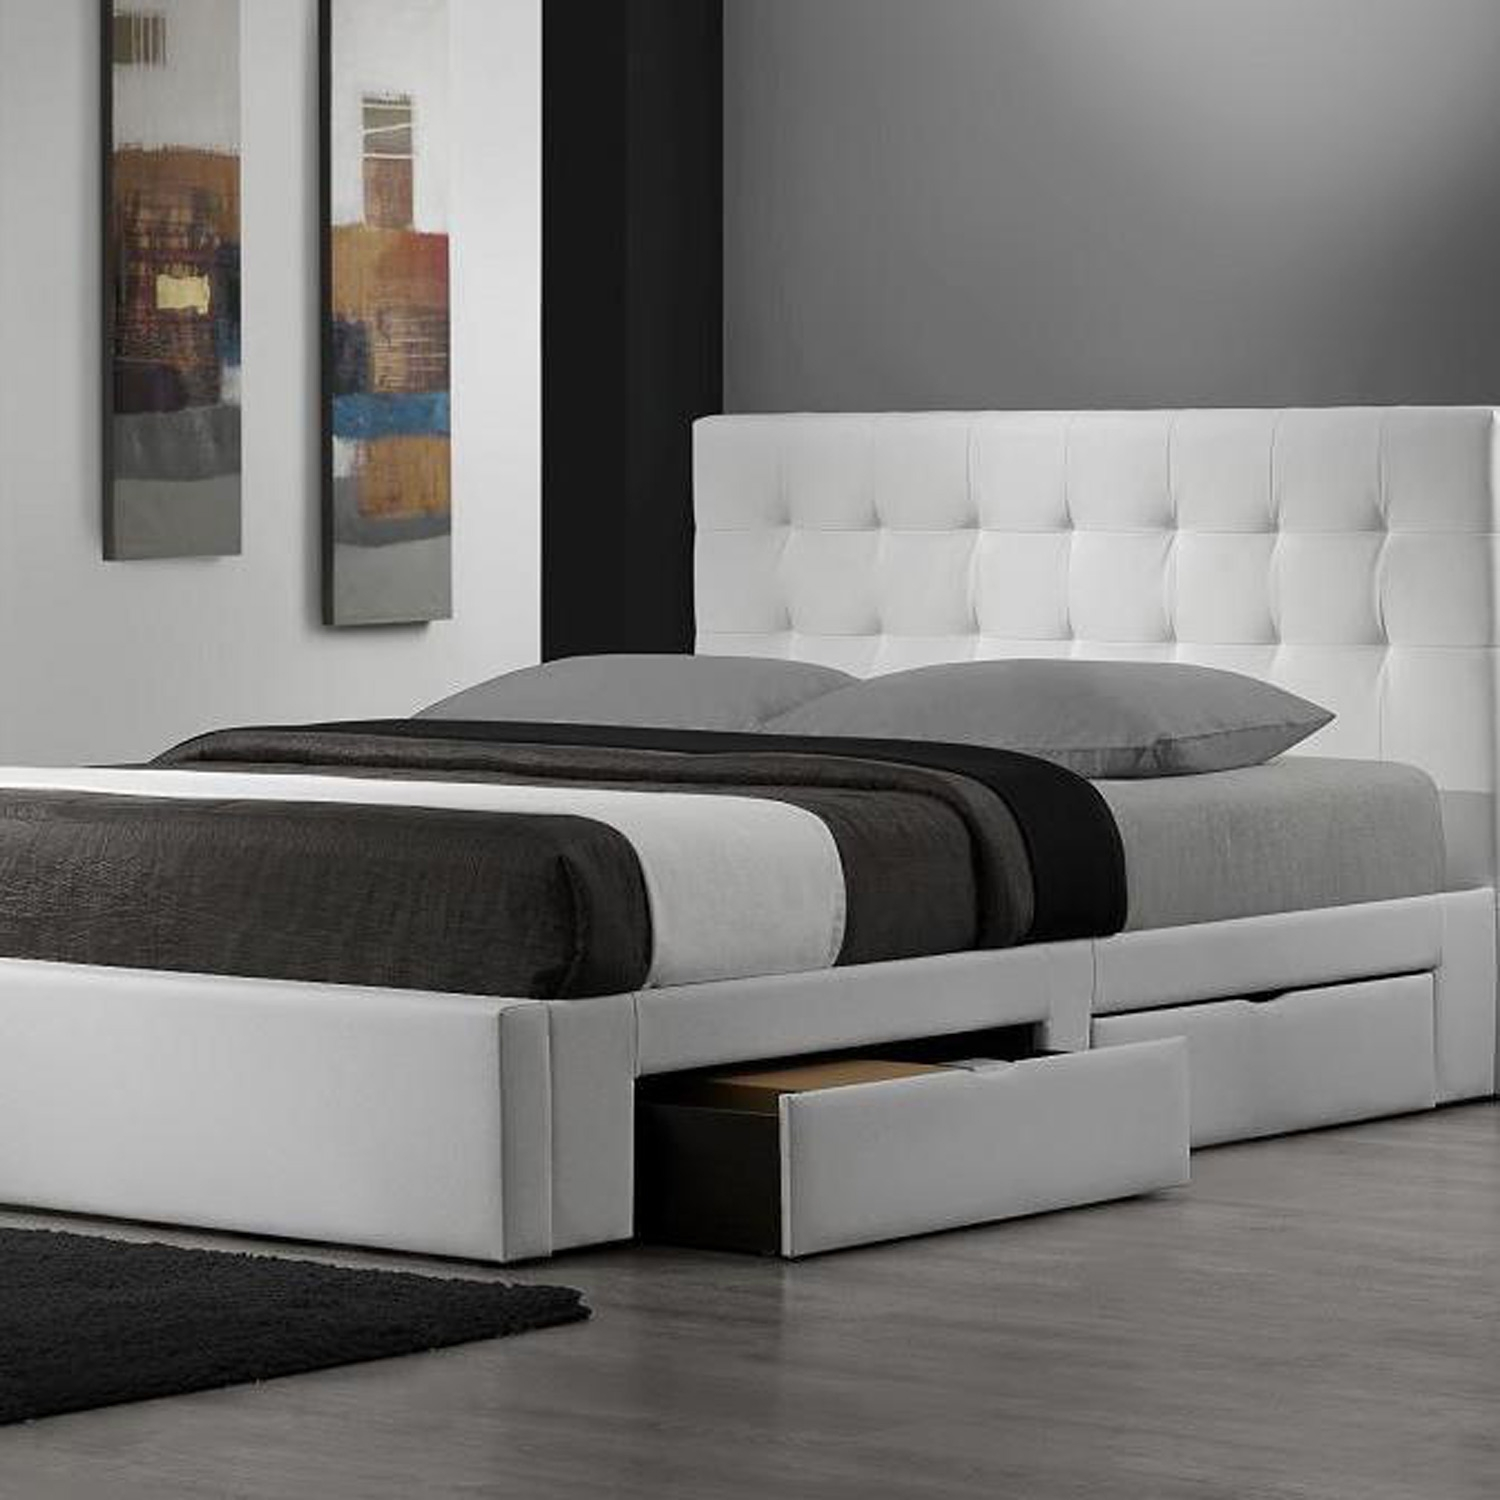 Modern King Size Bed Frames Providing a Spacious Room for Great Sleeping Experiences  HomesFeed